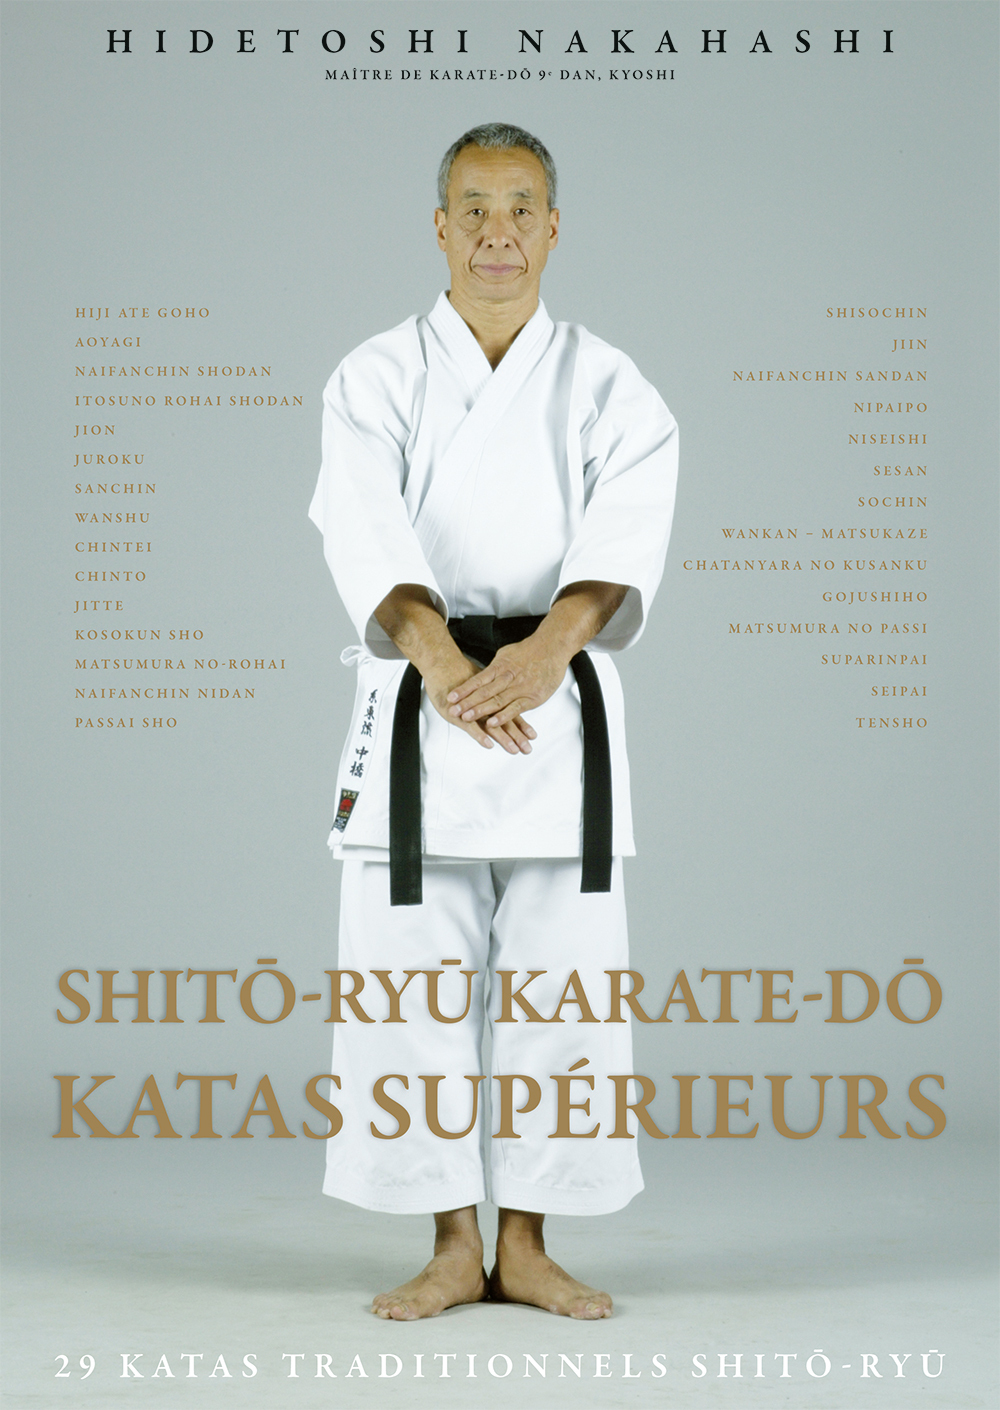 SHITO-RYU - KARATE-DO - KATAS SUPERIEURS